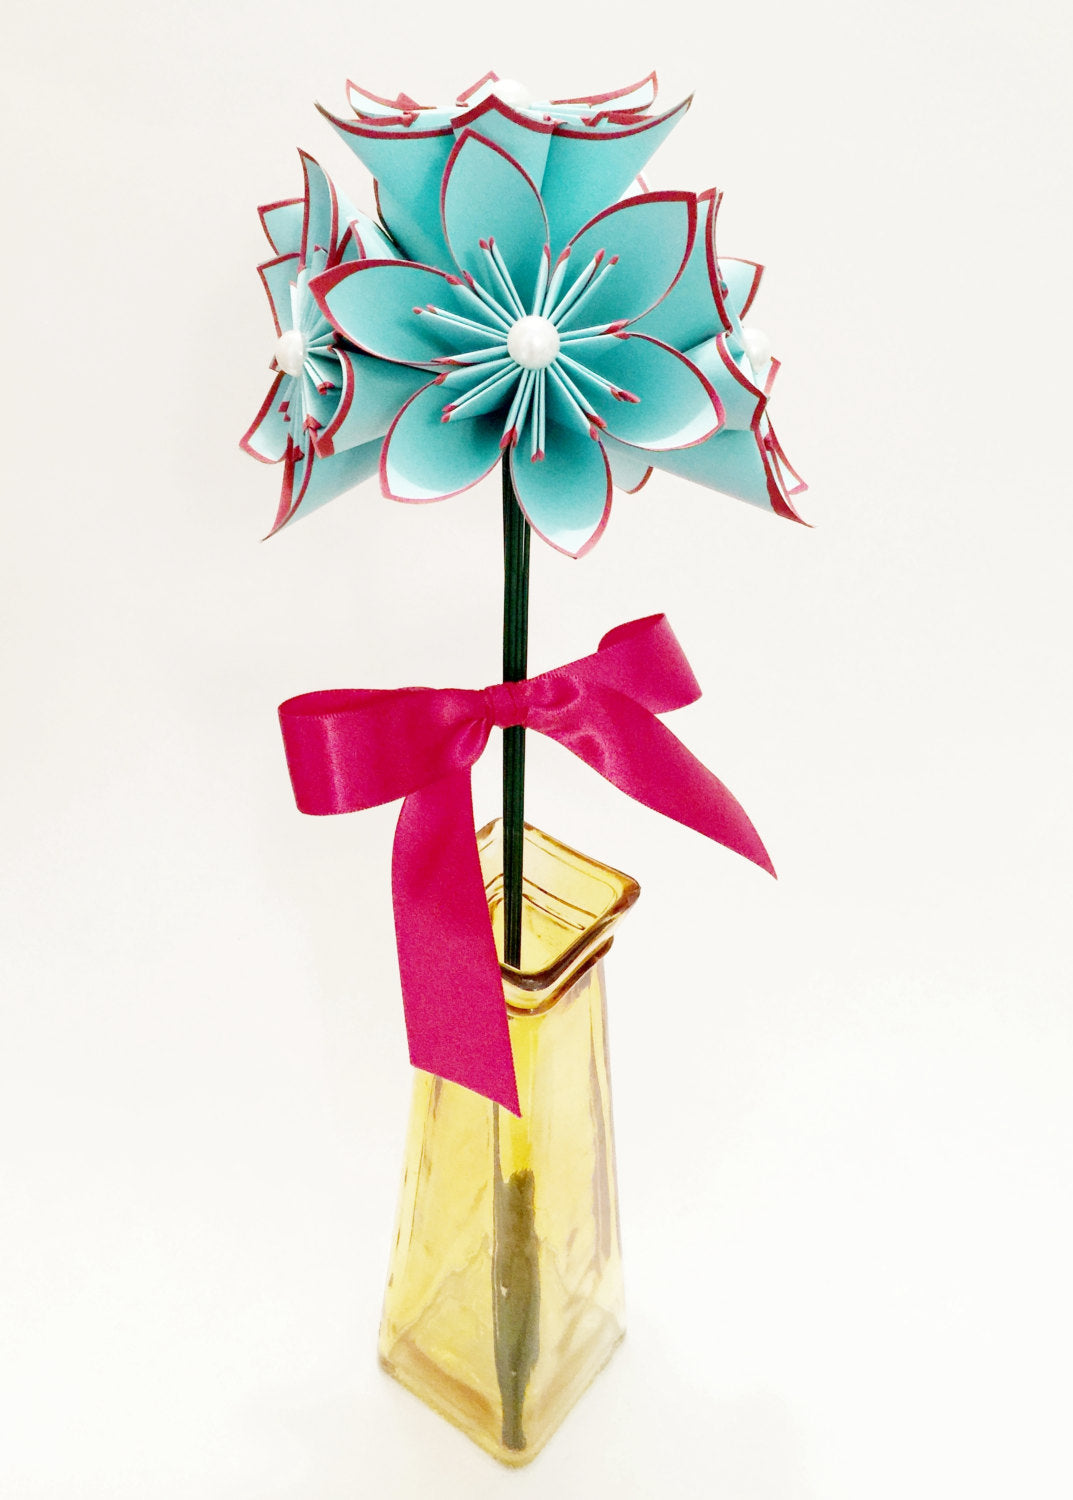 5 Turquoise Red Paper Flowers Ready To Ship Handmade Origami